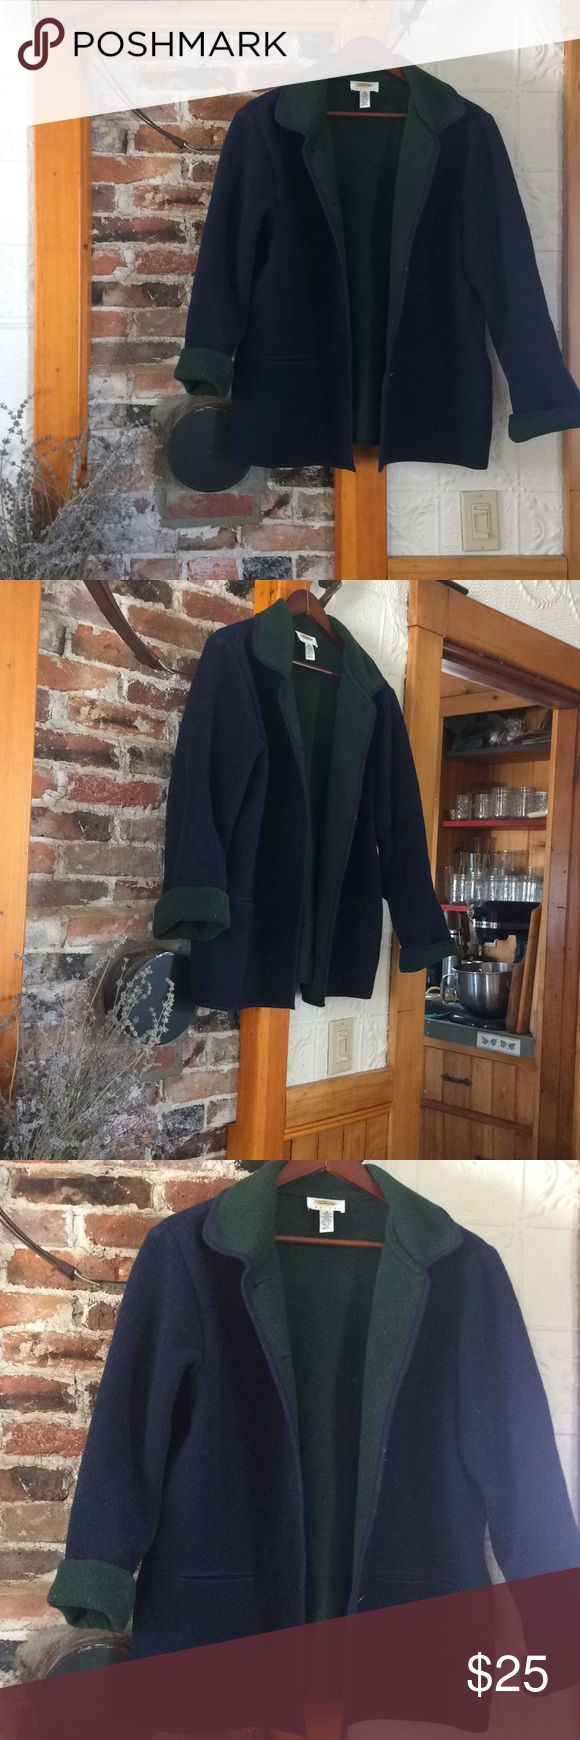 Talbots boiled wool coat Boiled wool/fleece jacket from Talbots (women's medium). Dark blue with dark green lining and metal buttons. Jackets & Coats